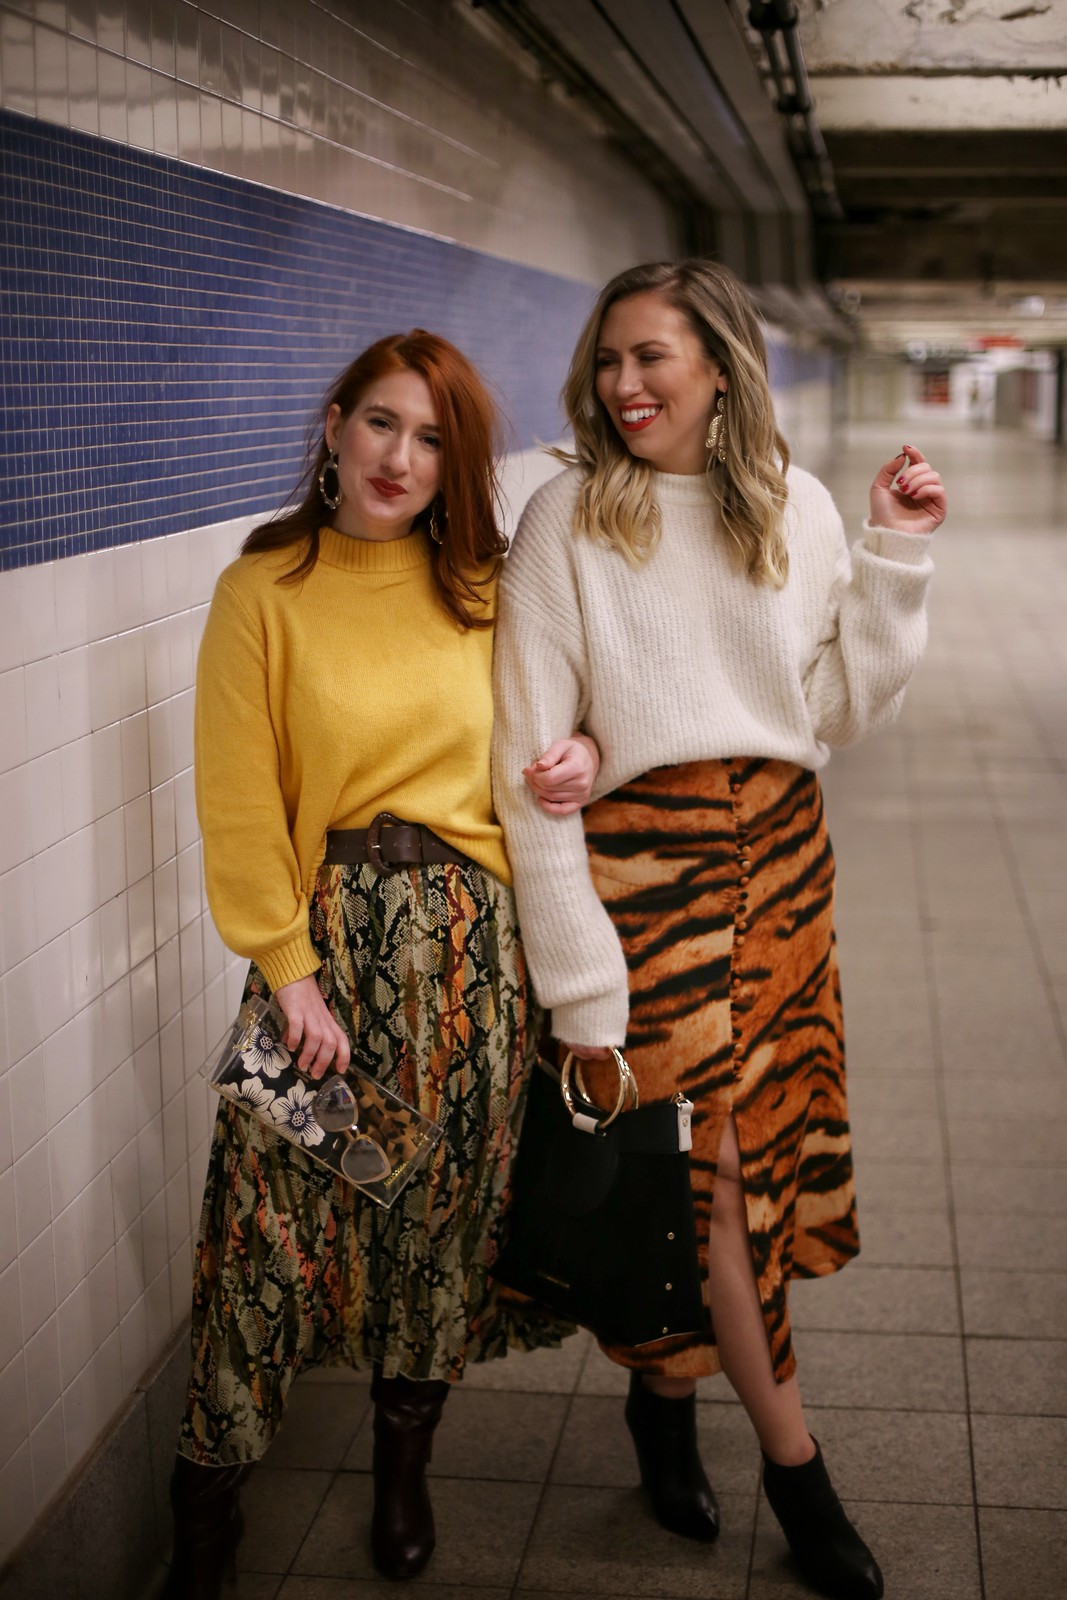 Animal Print Skirts Snake Print Skirt Tiger Print Skirt Fashion Bloggers Winter Outfits Canal Street Subway Fashion Photo Shoot